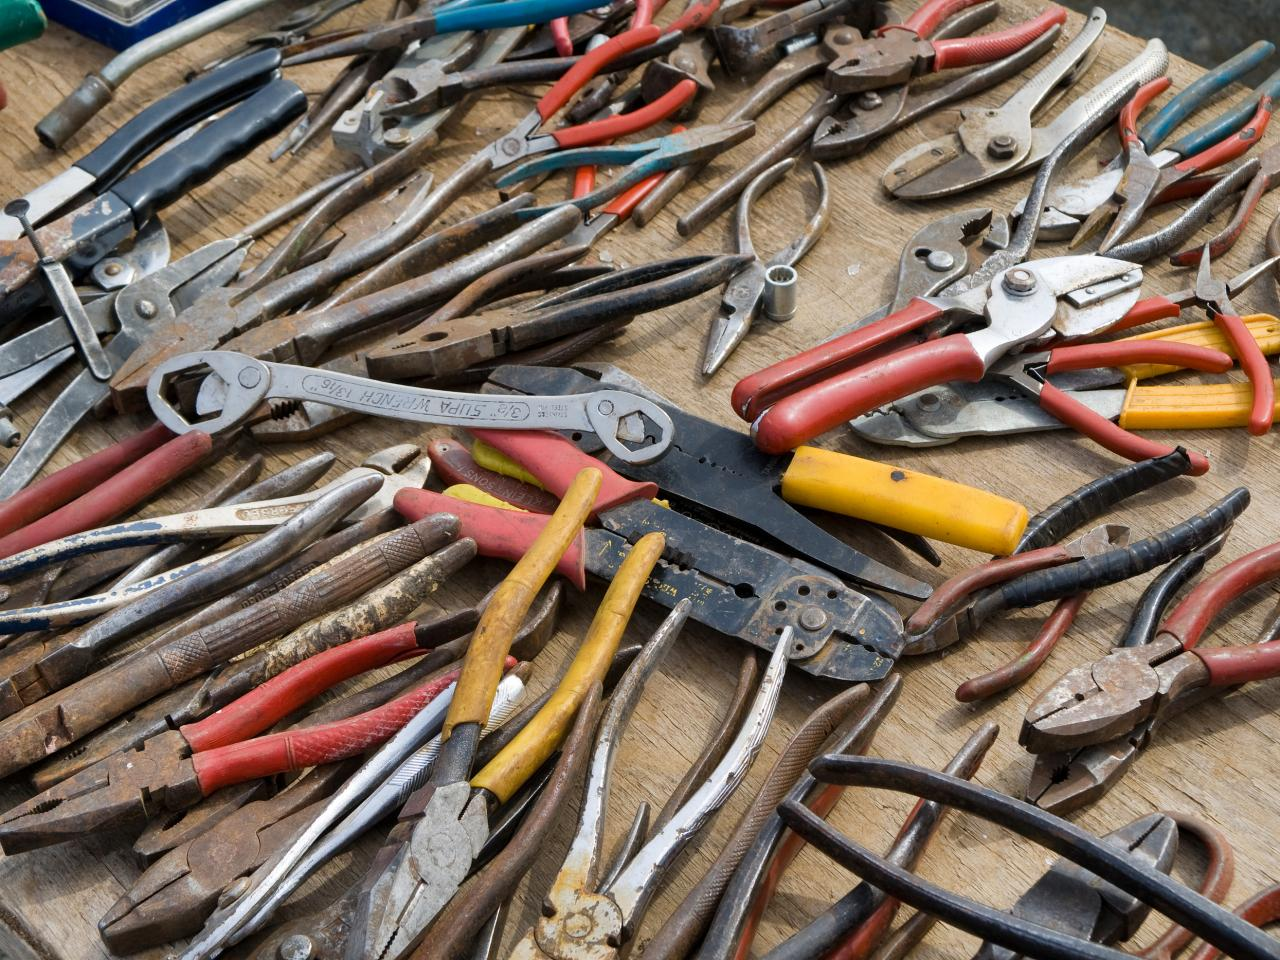 Buying guide for secondhand tools diy for Common garden hand tools